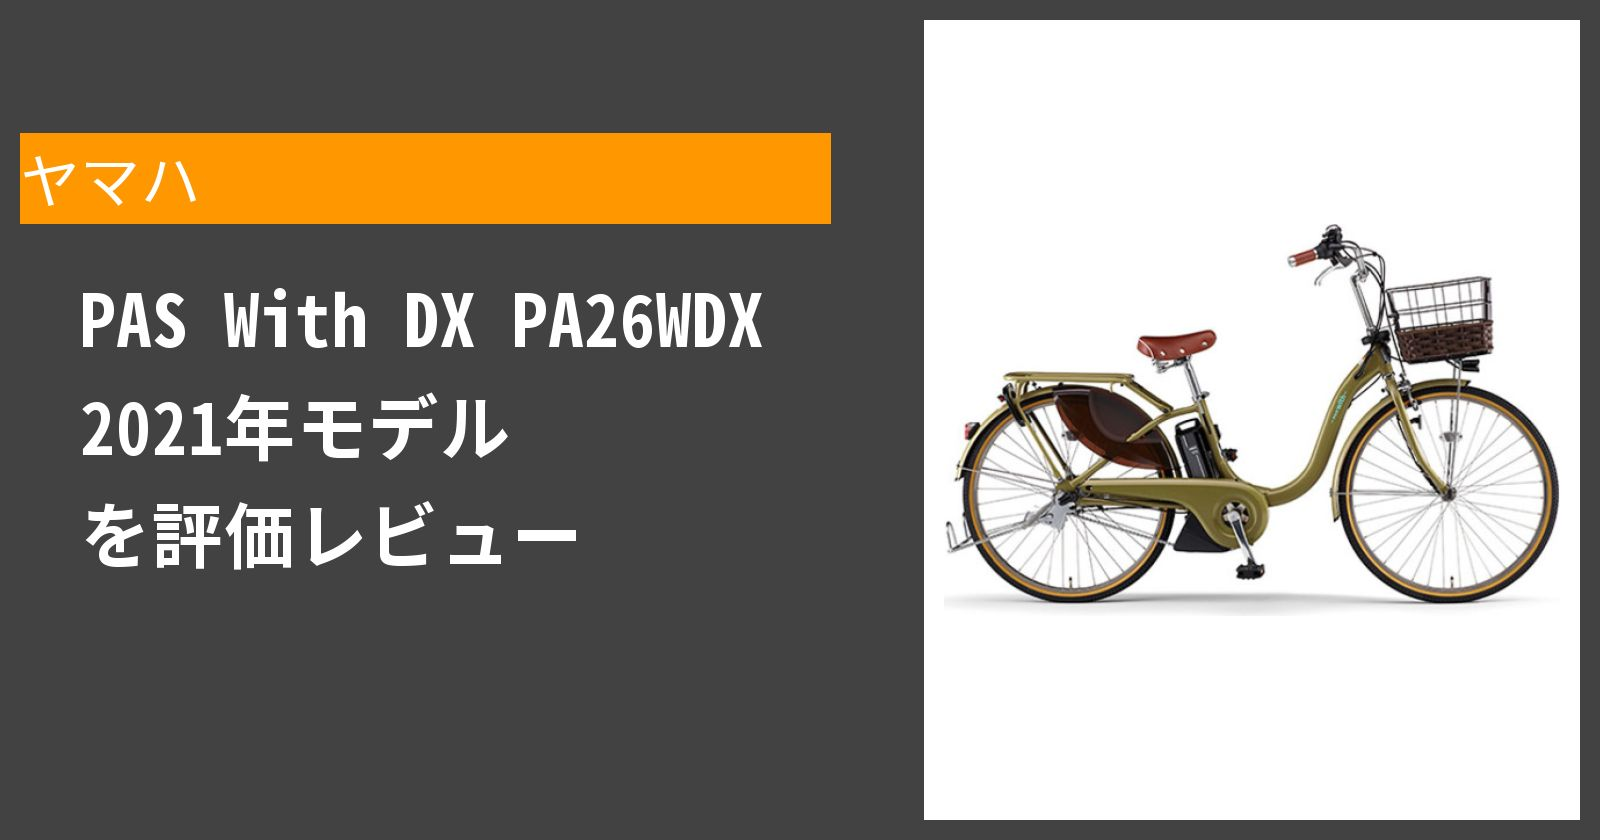 PAS With DX PA26WDX 2021年モデルを徹底評価